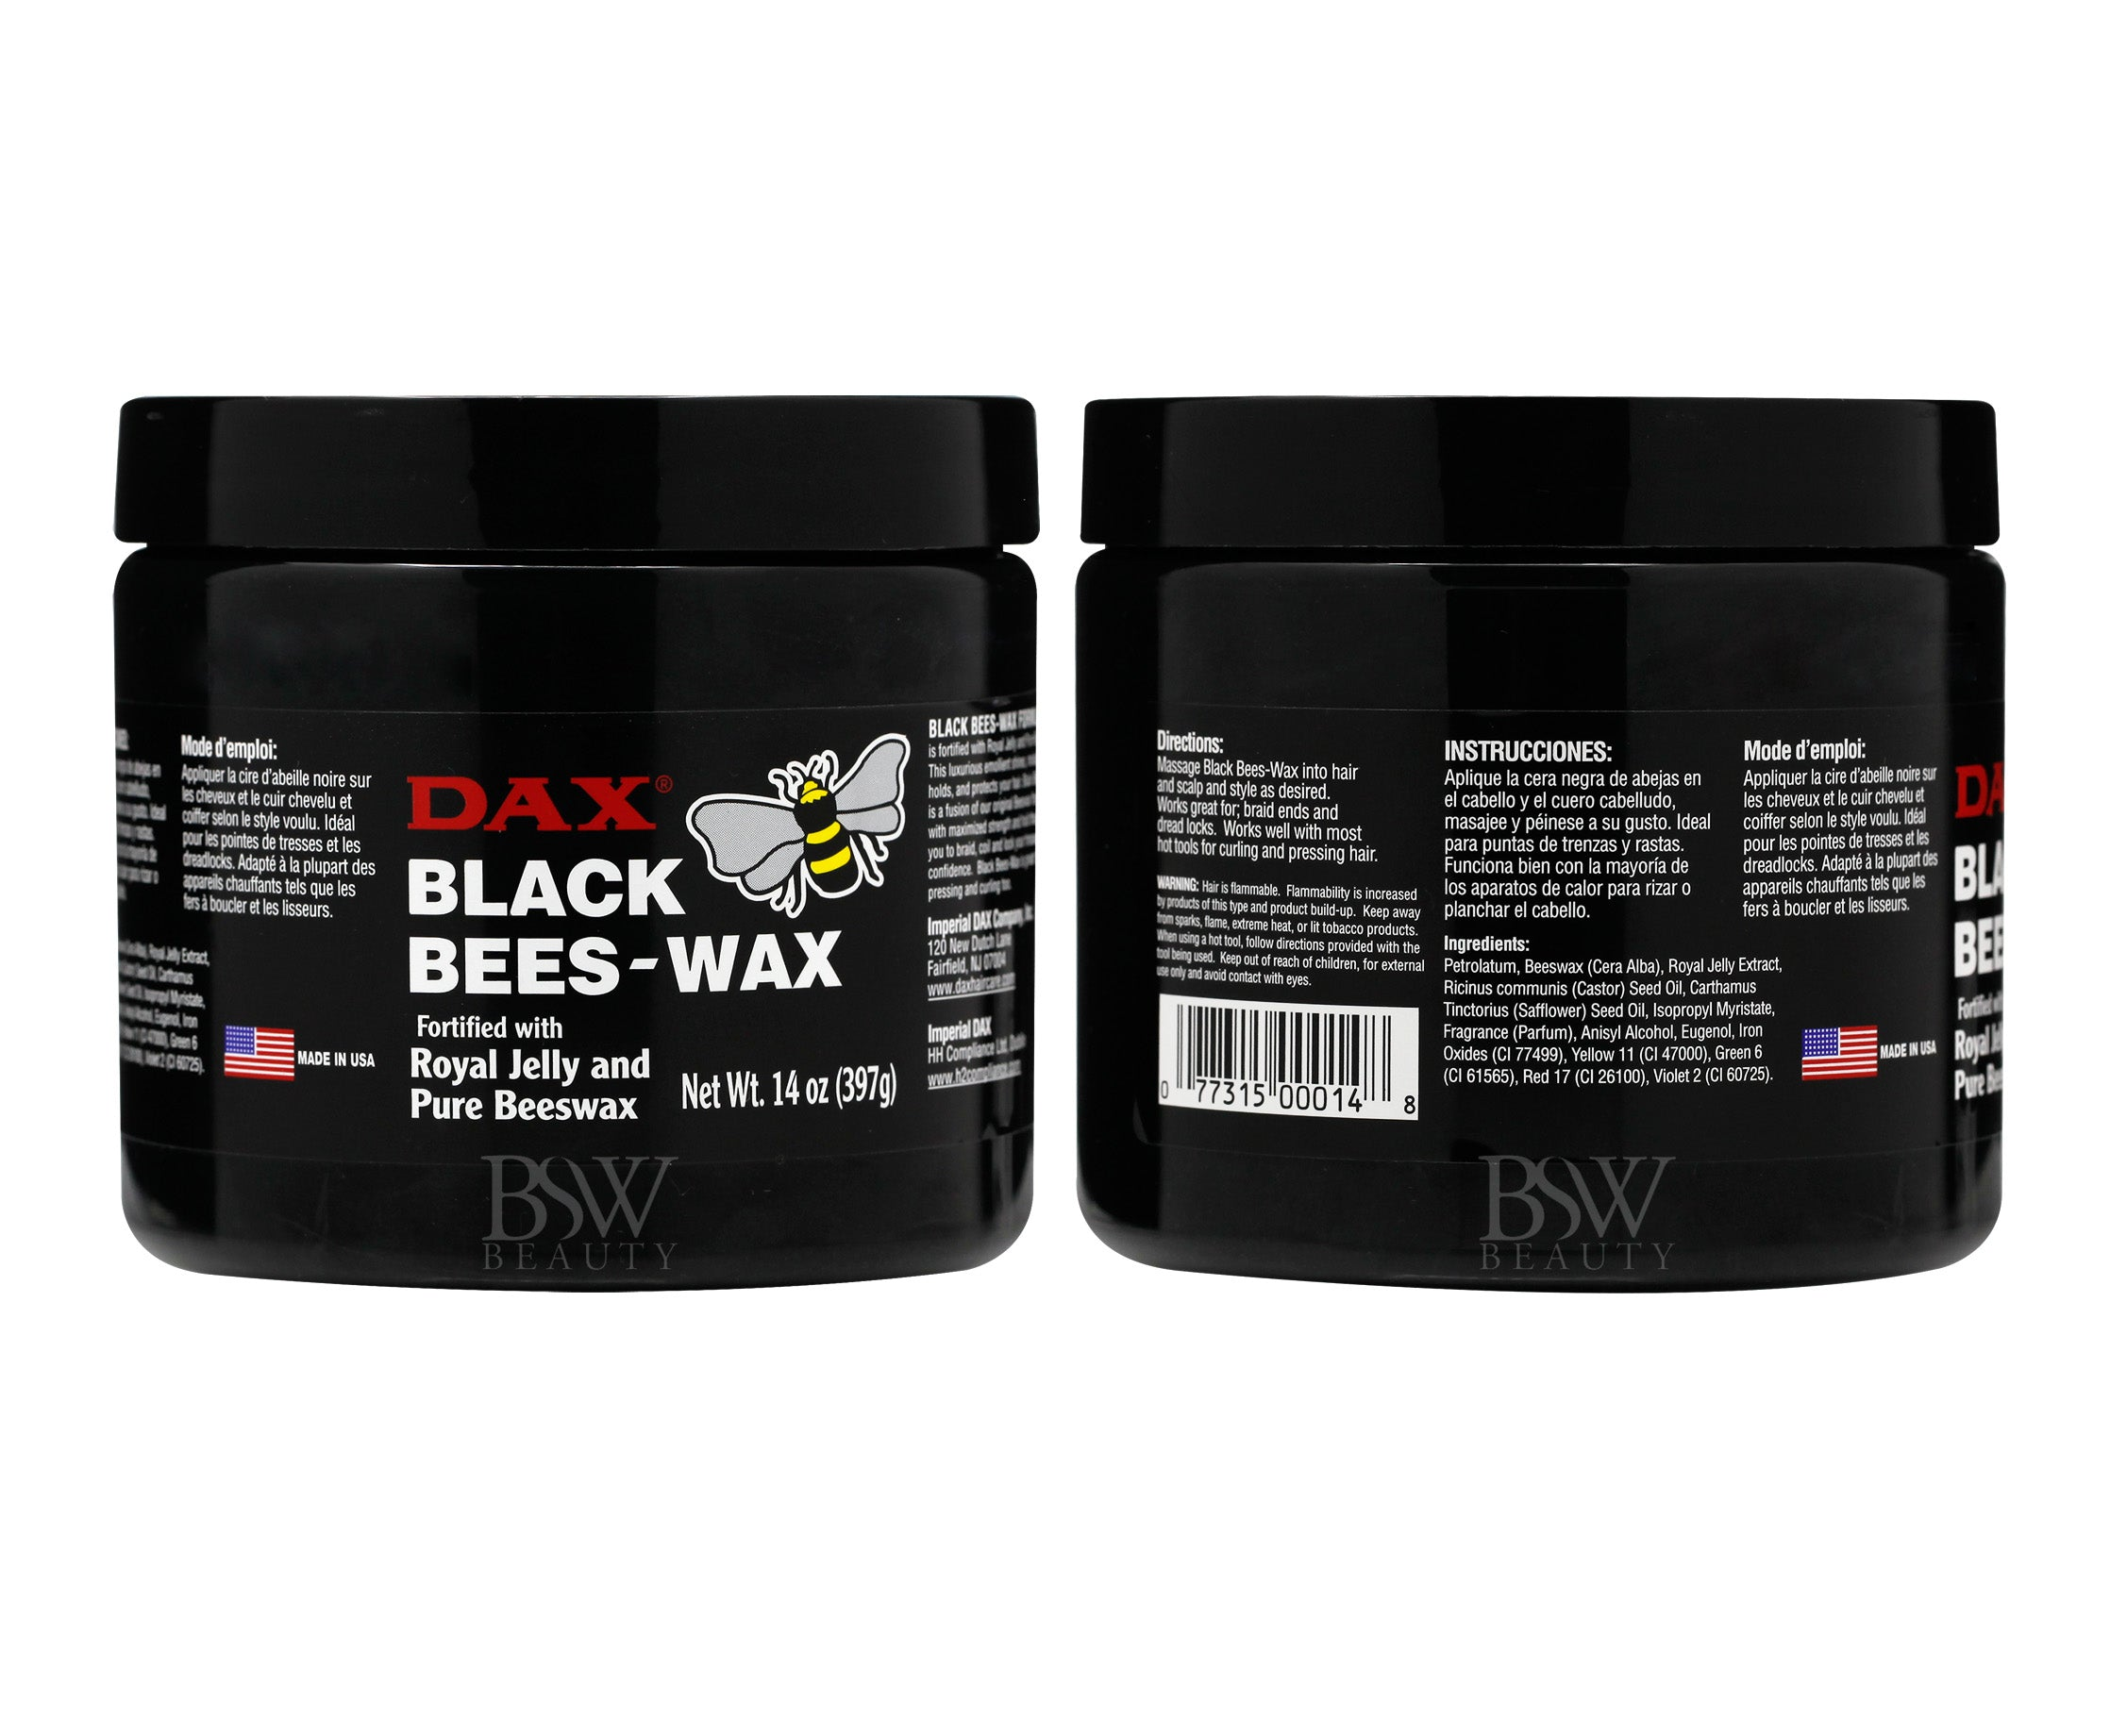 DAX BLACk BEES-WAX FORTIFIED WITH ROYAL JELLY AND PURE BEESWAX 14oz